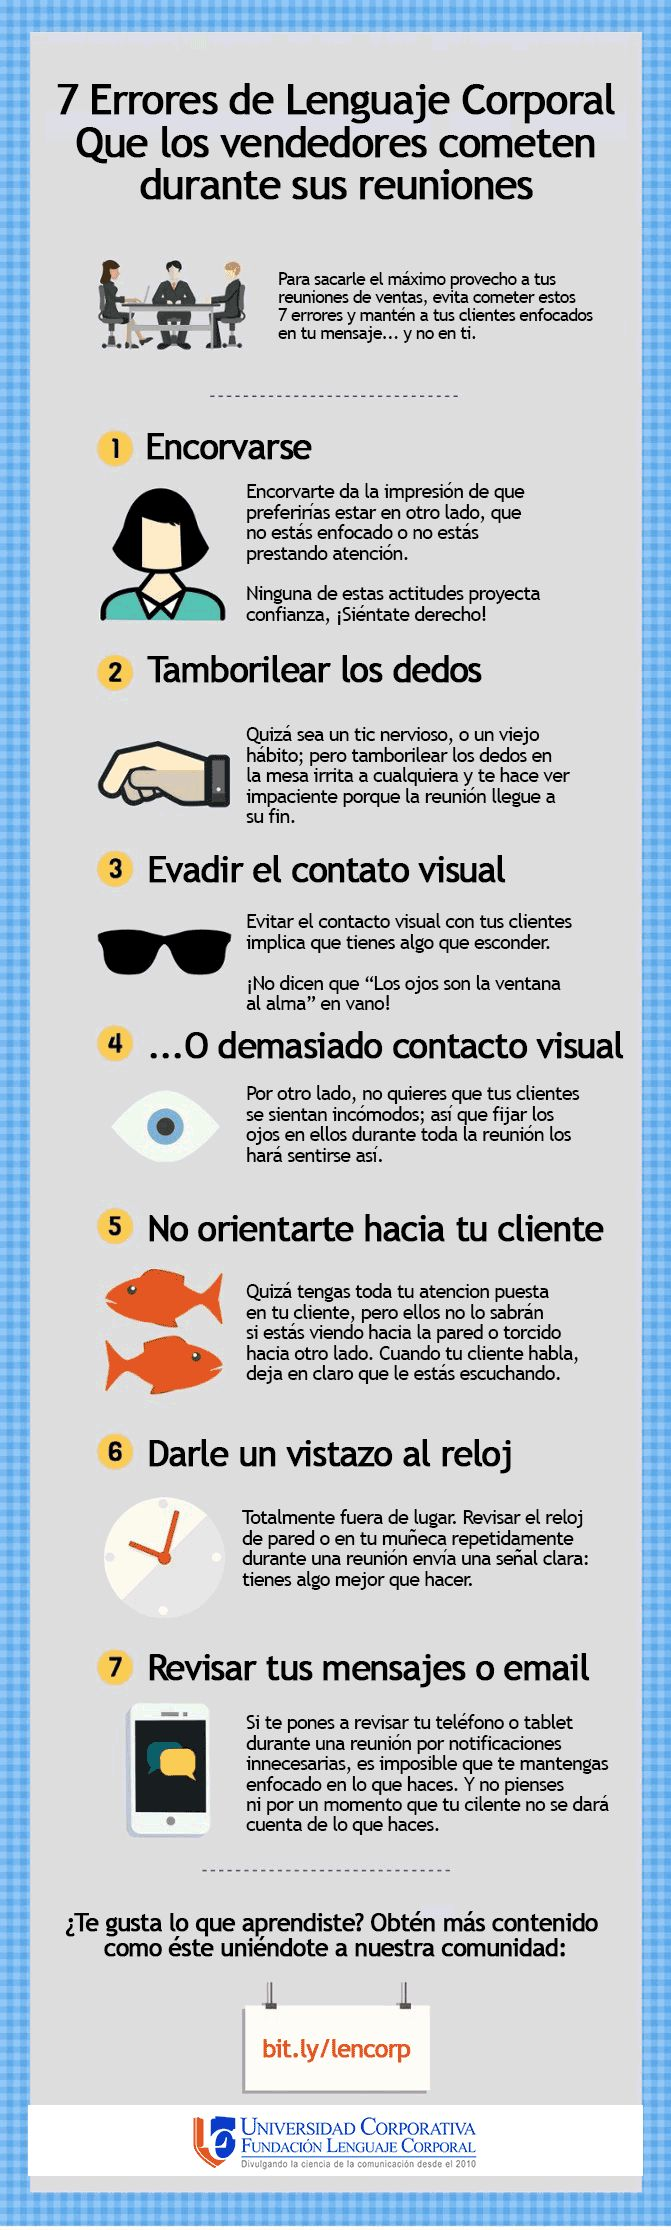 7 Errores que cometes al reunirte con un cliente #infografía #infographic #marketing